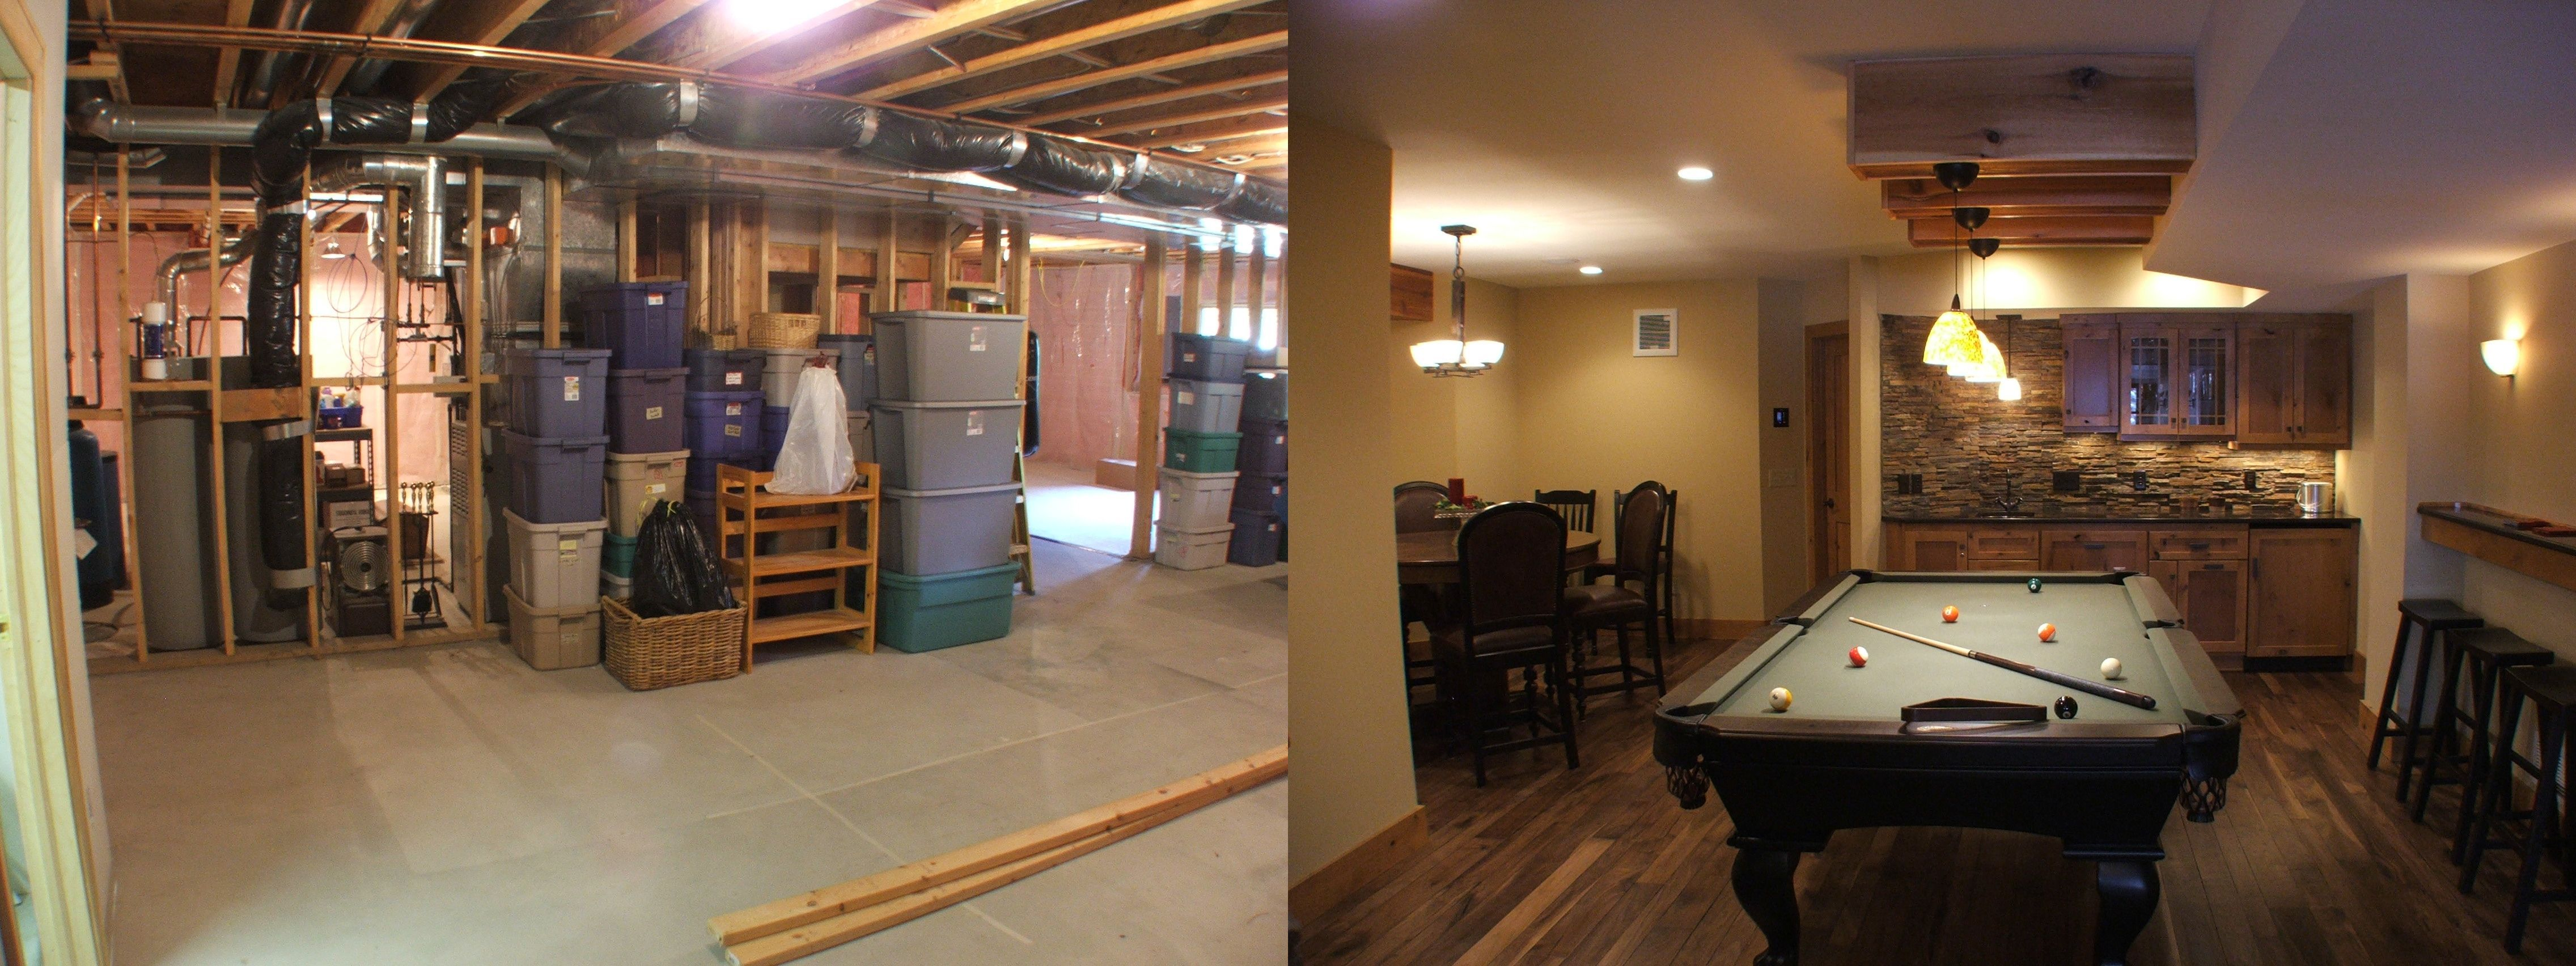 All About Basement Ideas And Design. Tags: Unfinished Basement Ideas,  Basement Ideas On A Budget, Basement Ideas Finished, Basement Ideas Family,  ...